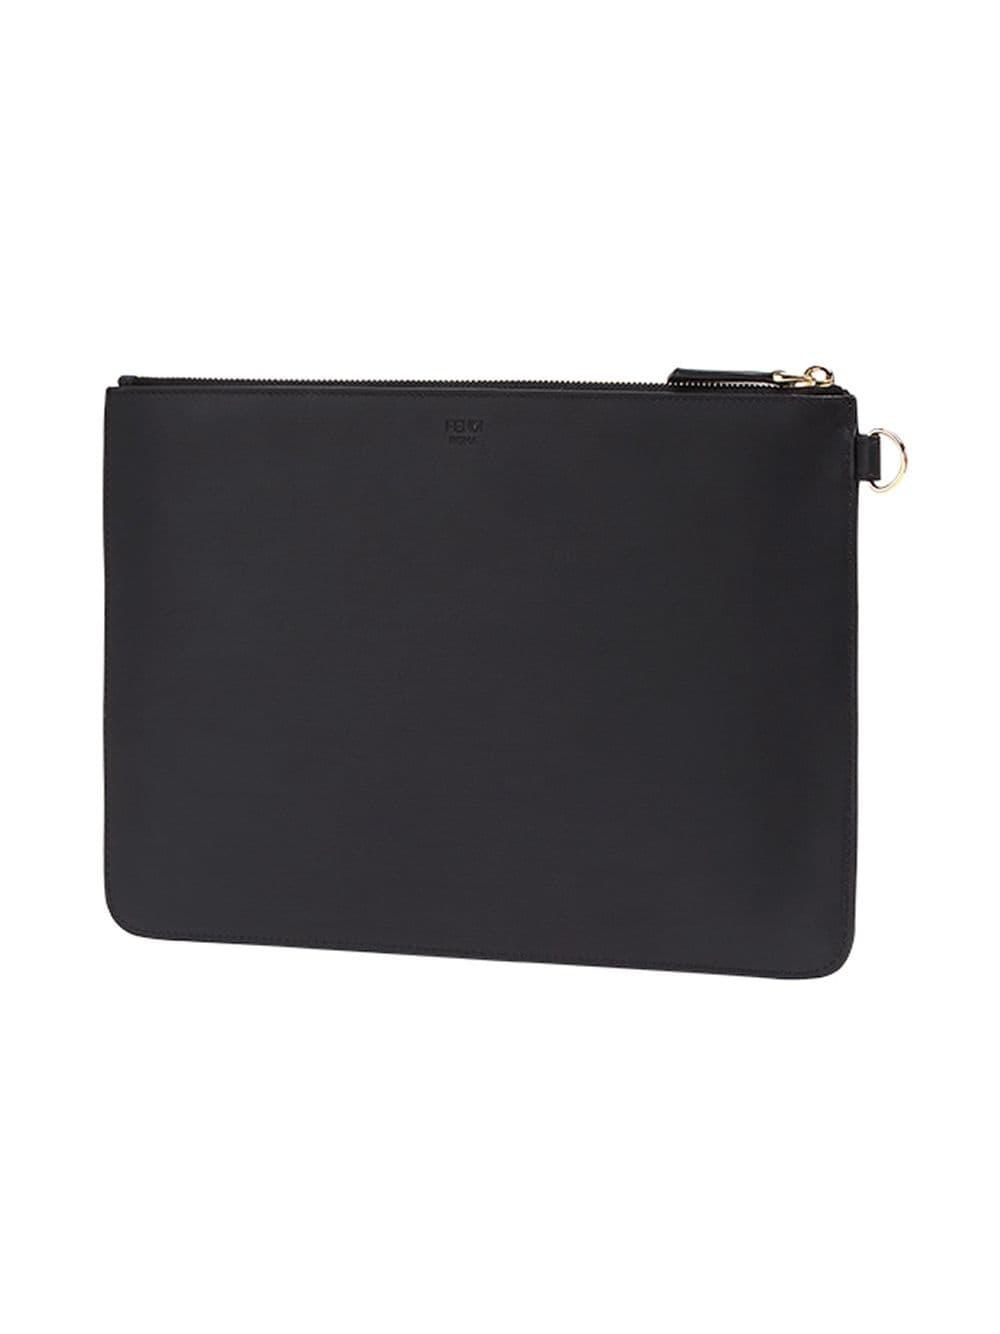 0f49c7bcf772 Lyst - Fendi Bag Bugs Leather Pouch in Black for Men